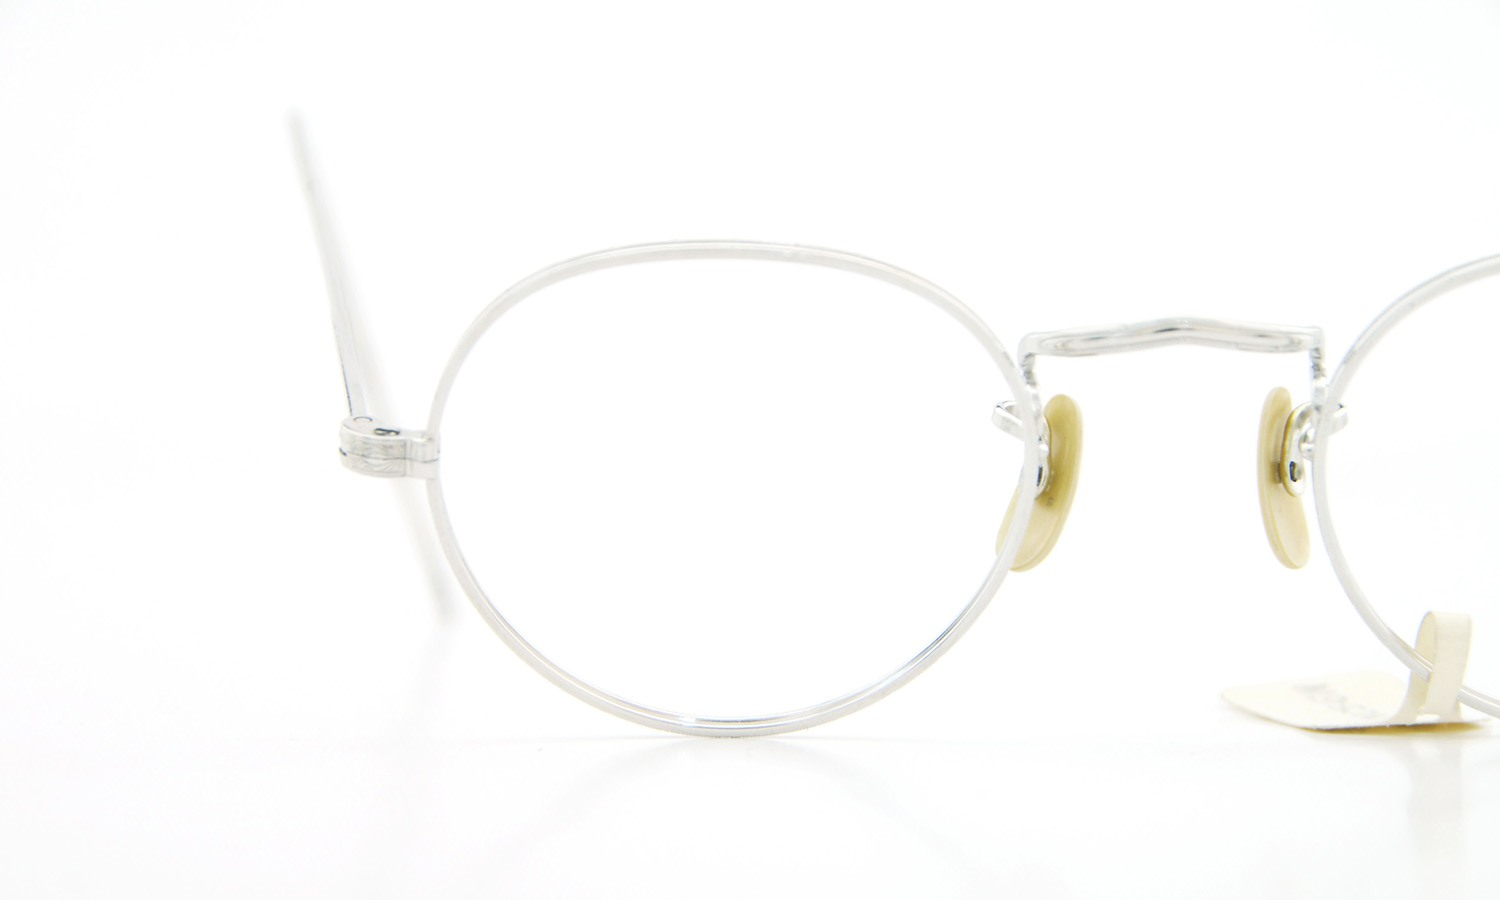 American vintage アメリカン ヴィンテージ メガネ 1930年代 PANTO 1/10 12kGF MASHWOOD CENTER-POINT col.White-Gold 42-20 13